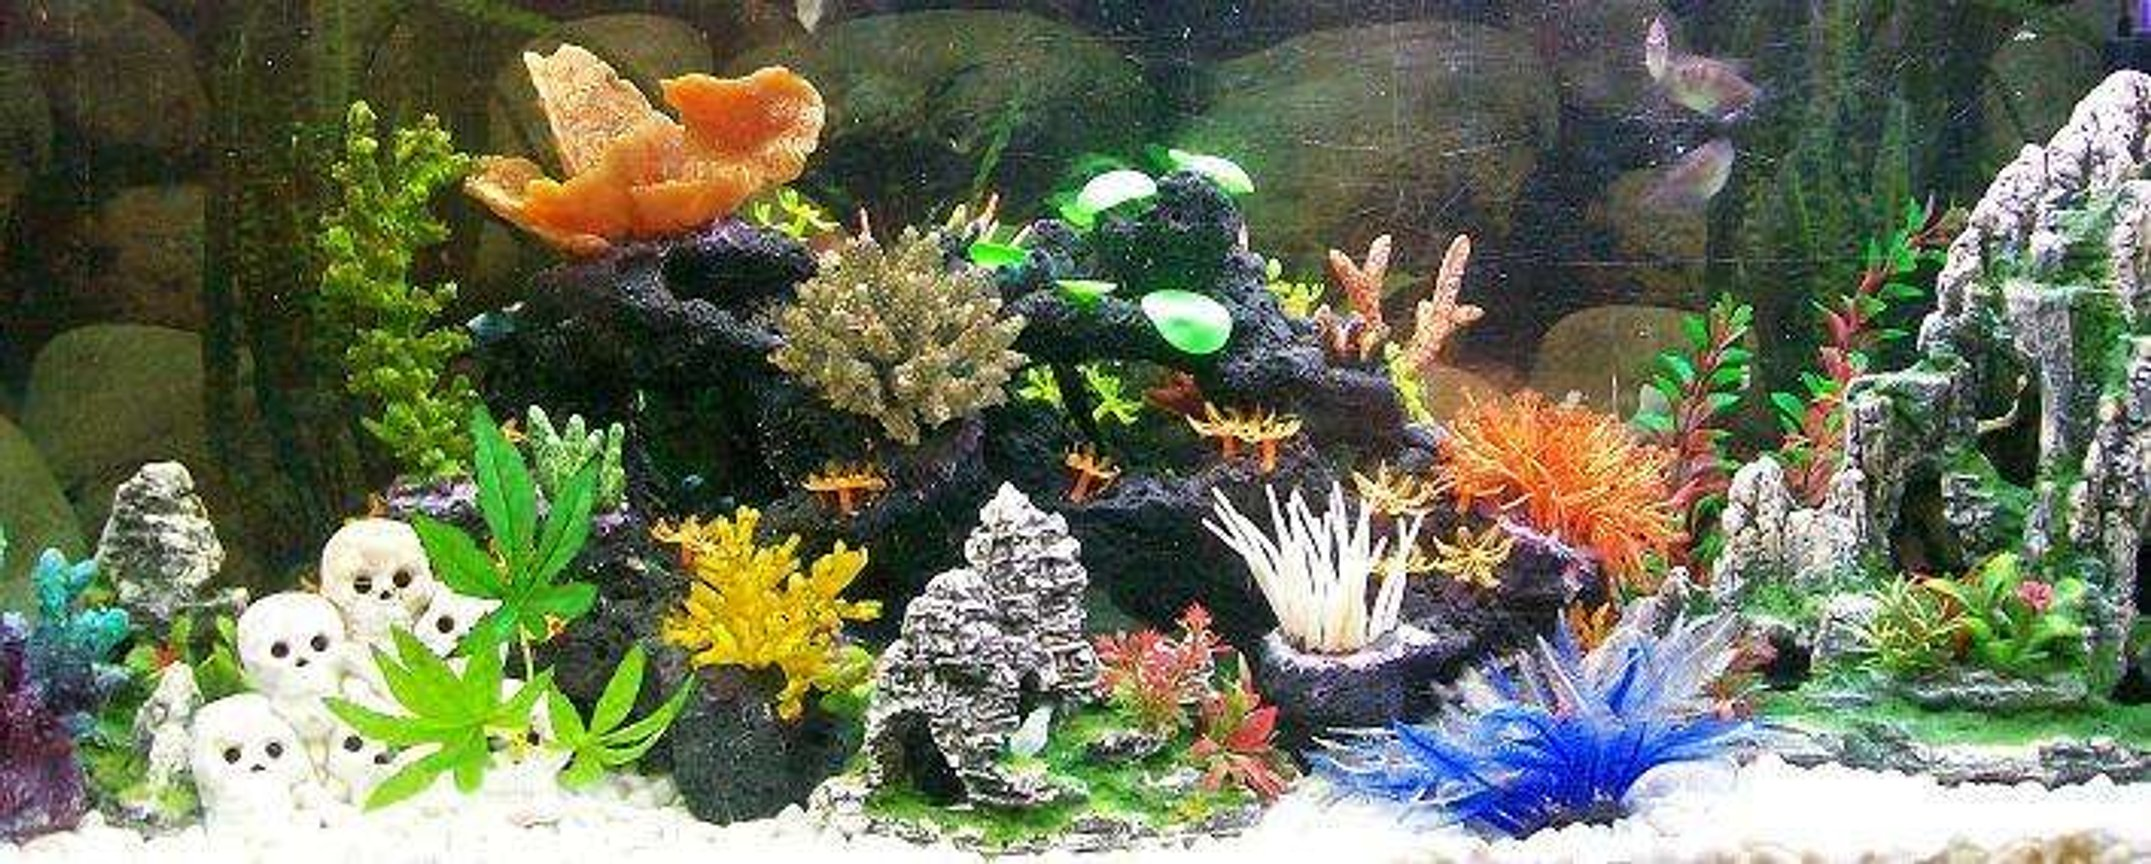 freshwater fish tank (mostly fish and non-living decorations) - ..Fake Neon Reef.. Tropical Freshwater..